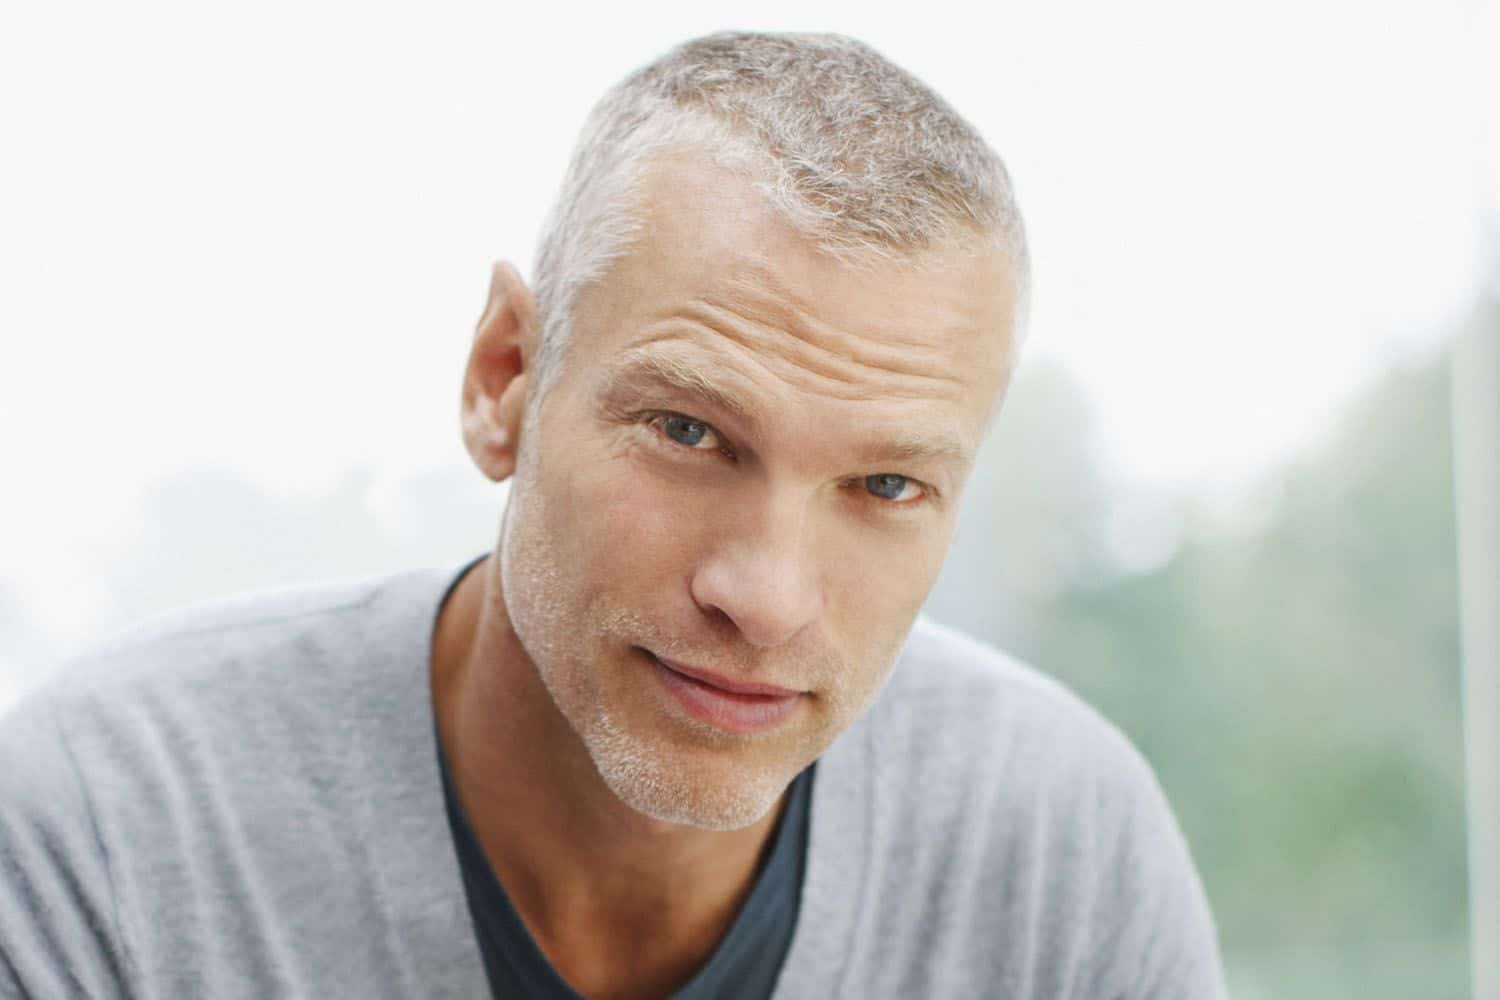 Hairstyles for Older Men - Smart, Cool and Funky Hairstyles ...